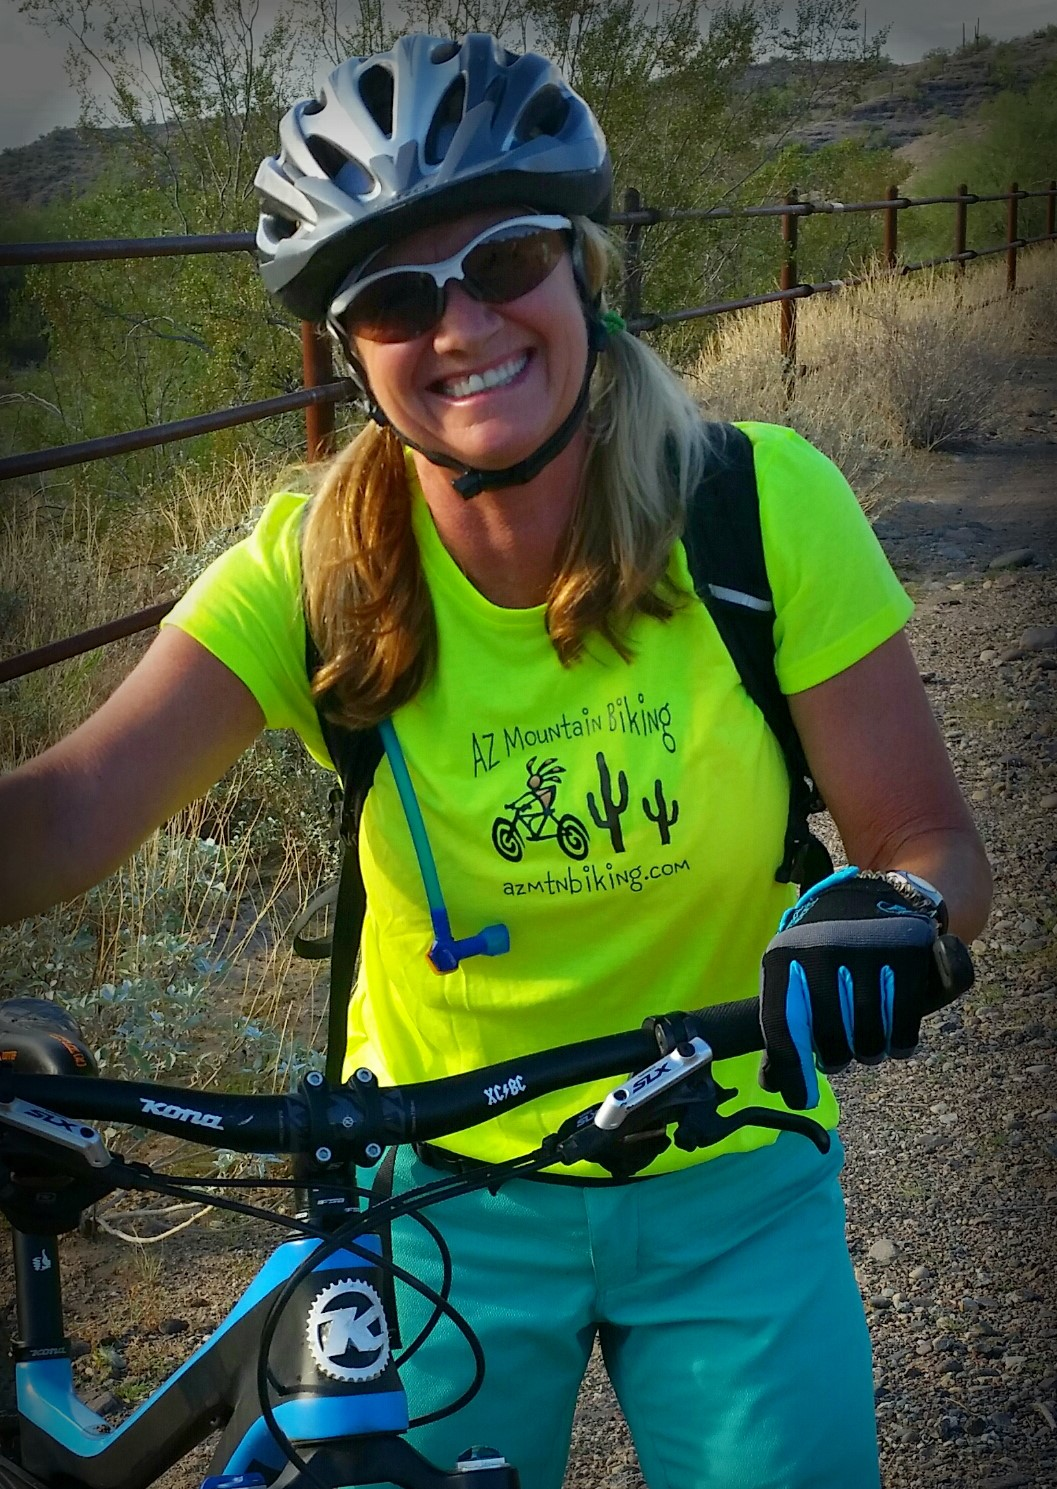 AZ Mountain Biking neon yellow riding shirt